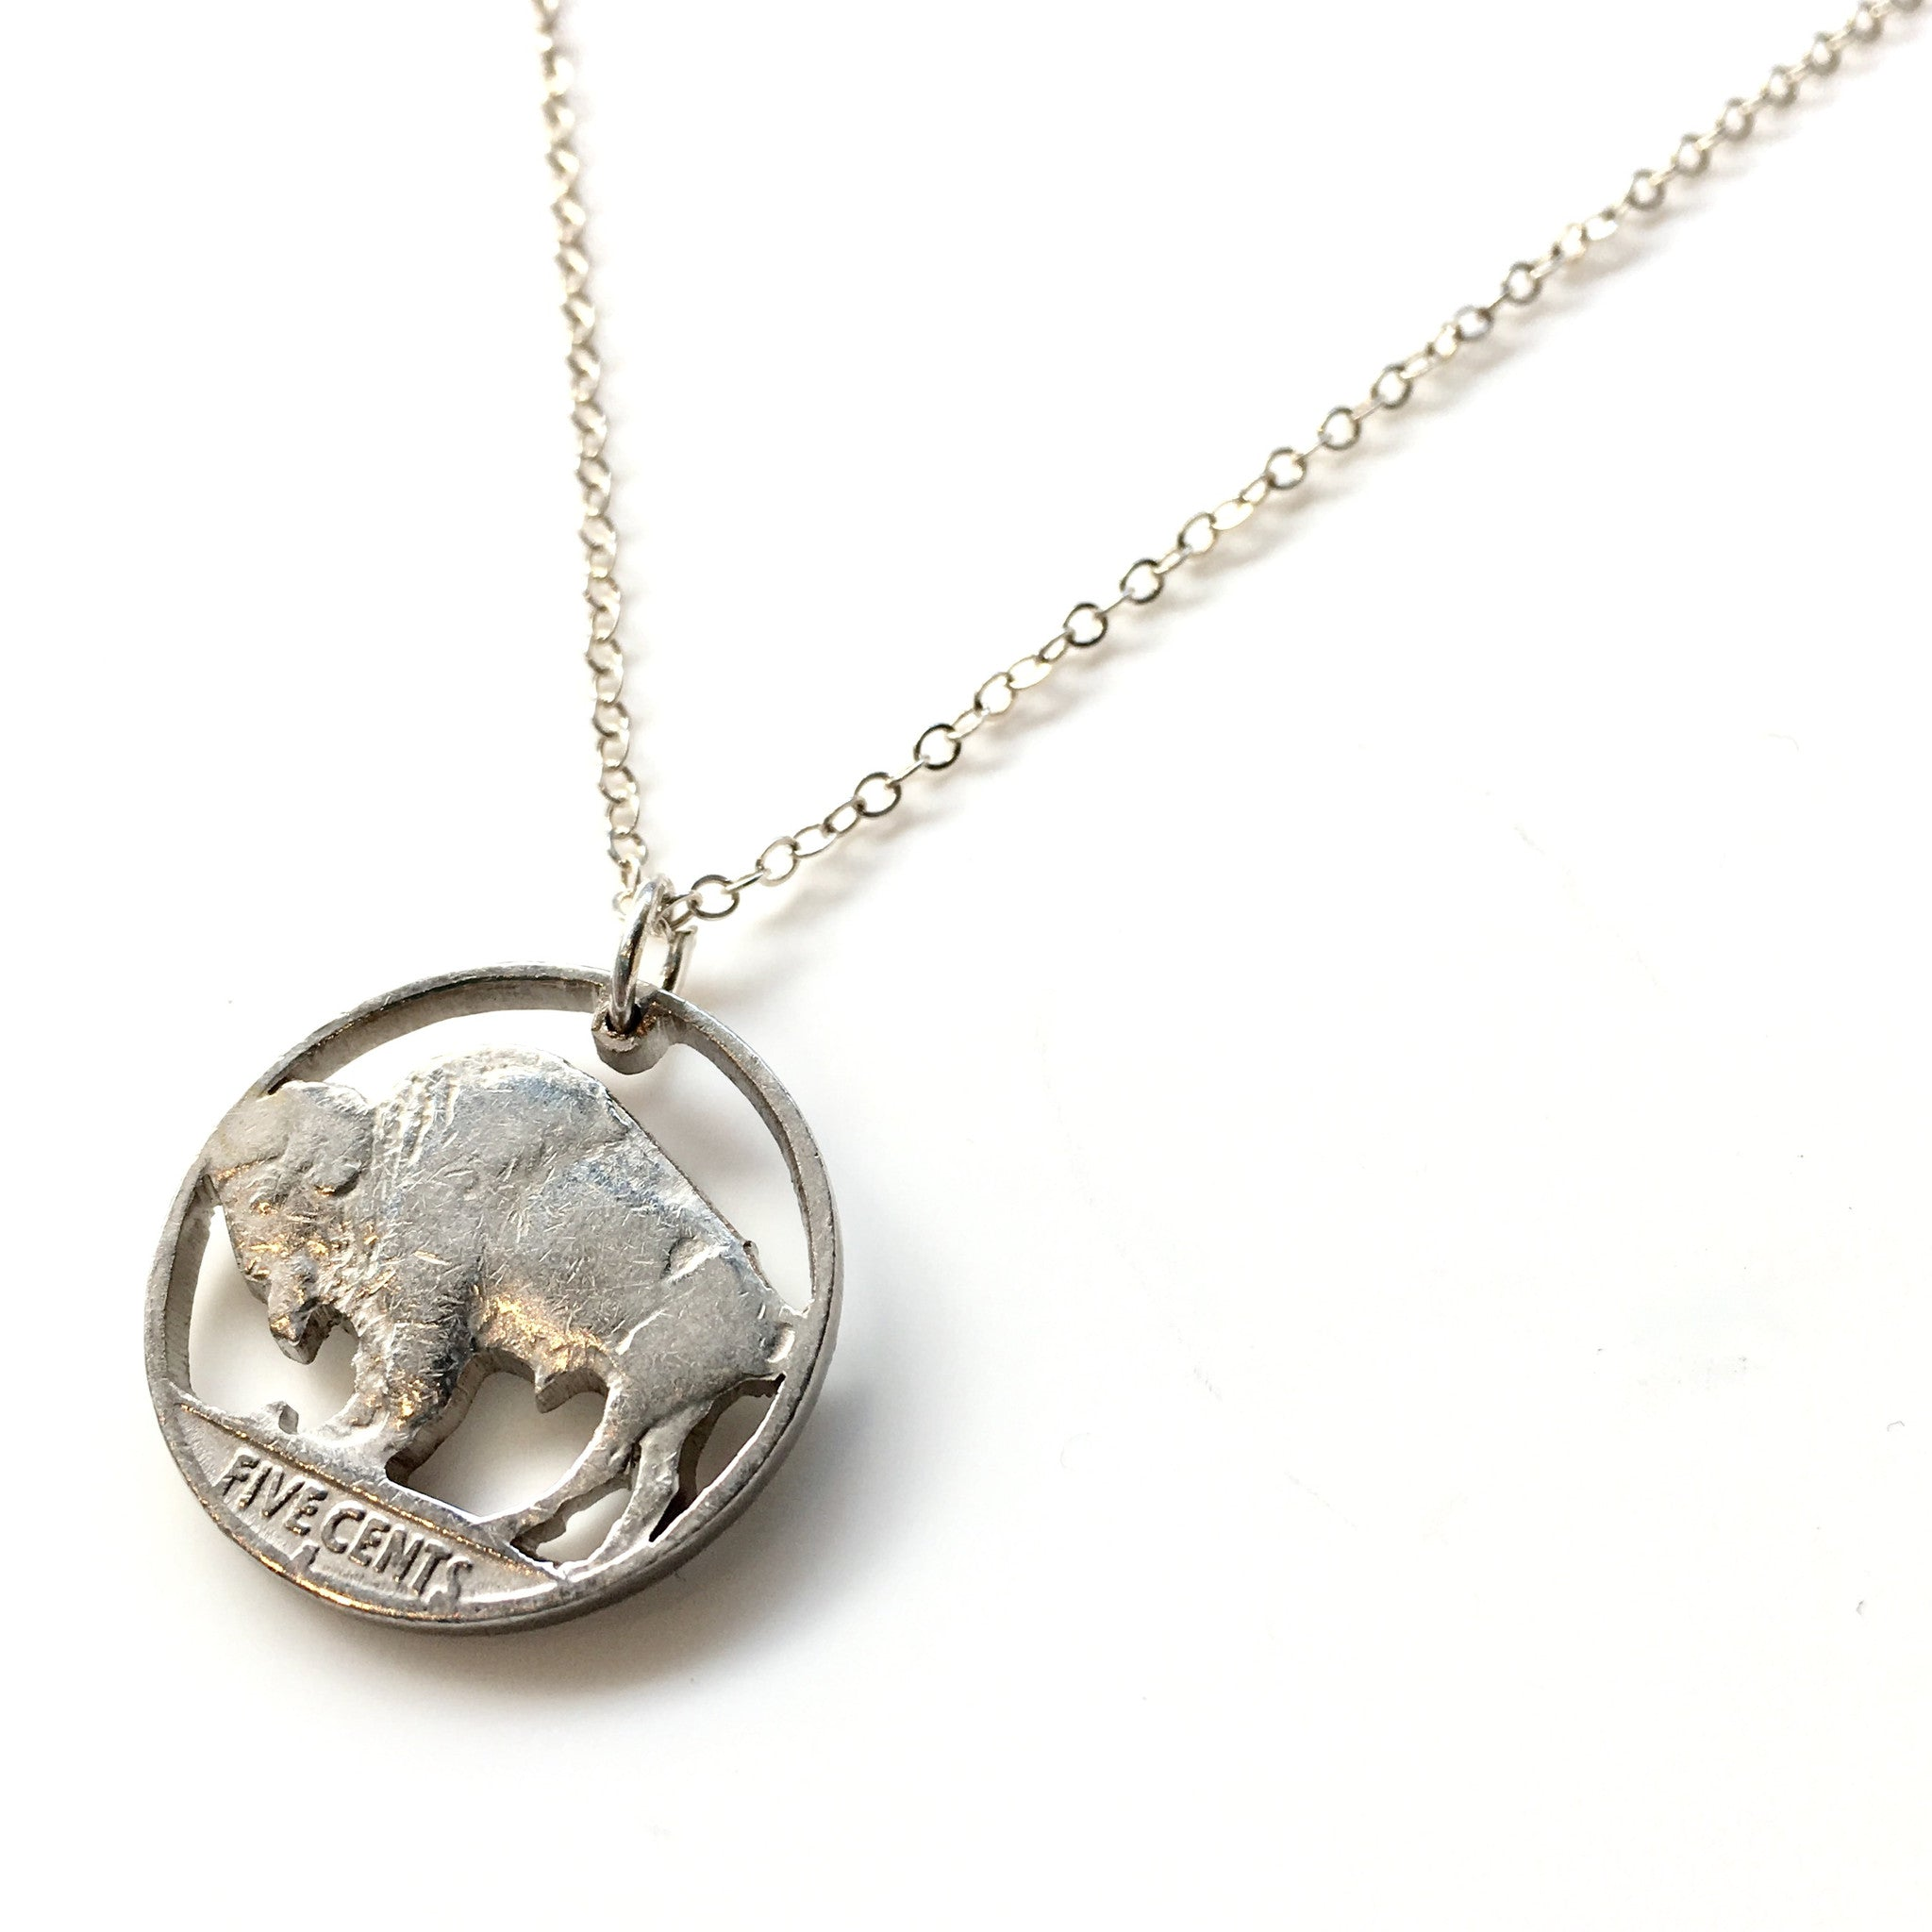 necklace bennett codd sonya carolyn deer pendant stag products